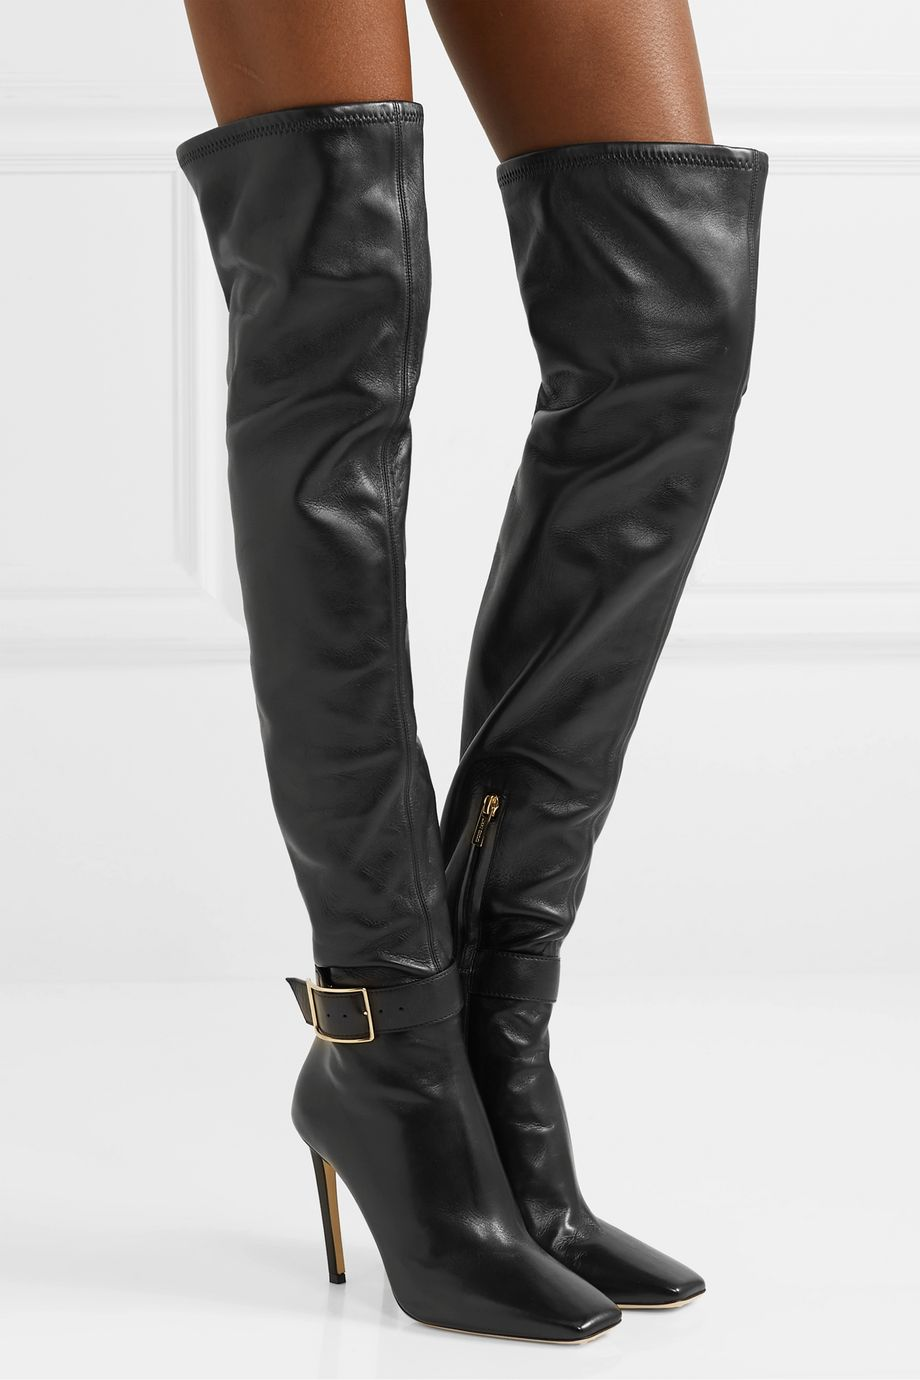 Jimmy Choo Takara 100 leather over-the-knee boots